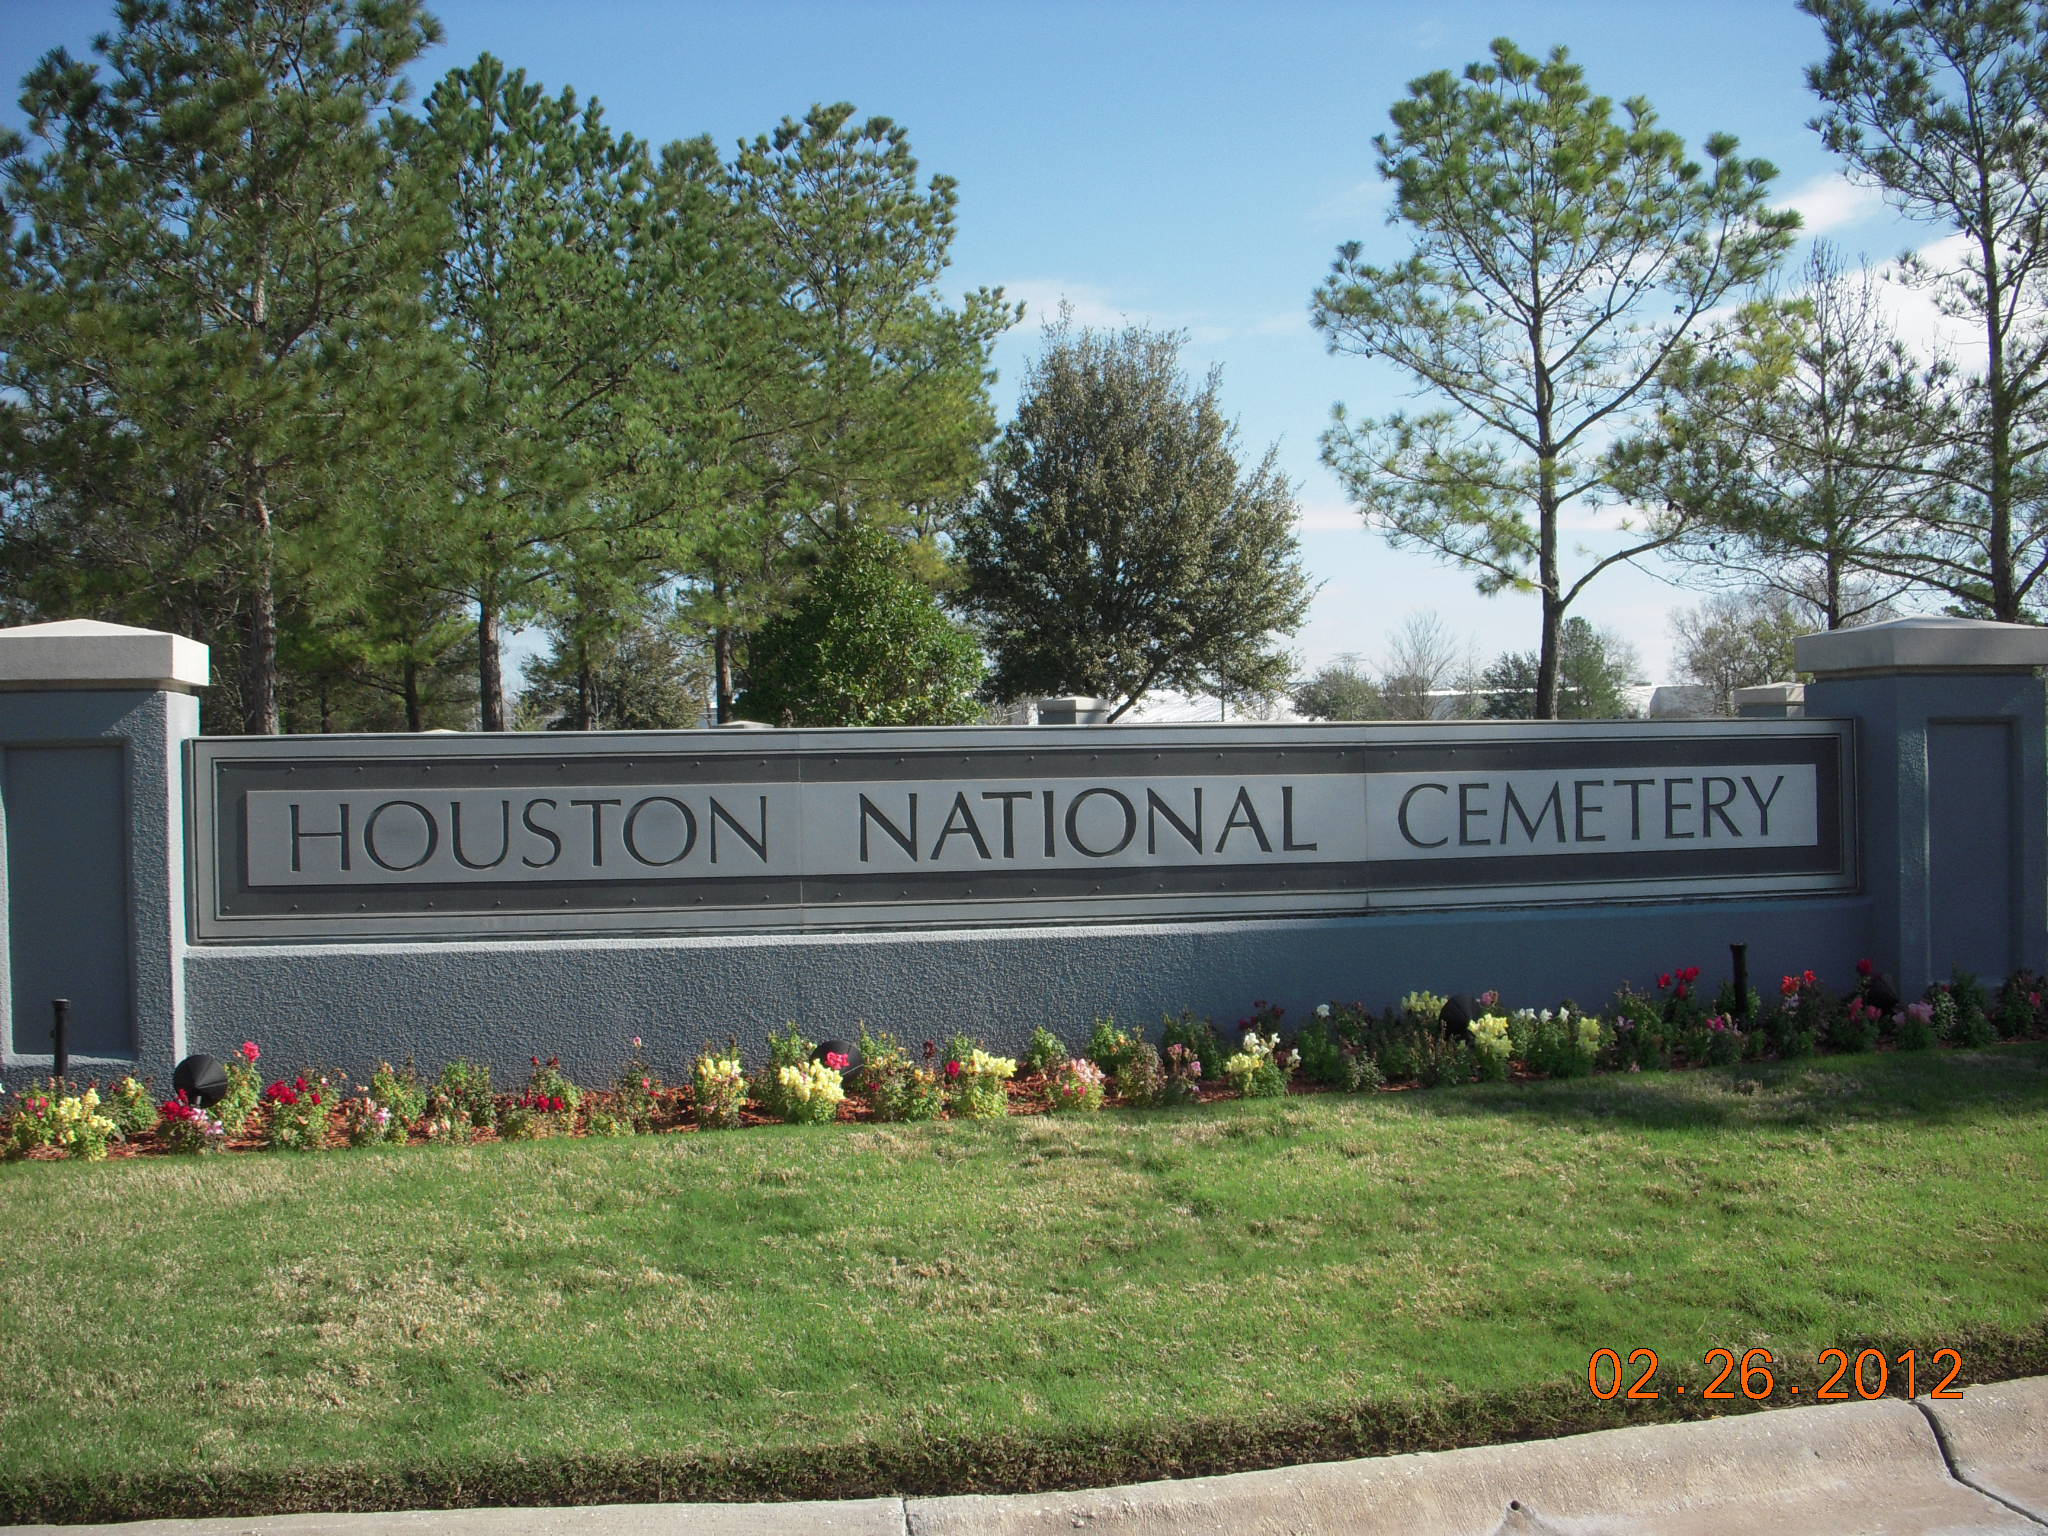 Houston National Cemetery